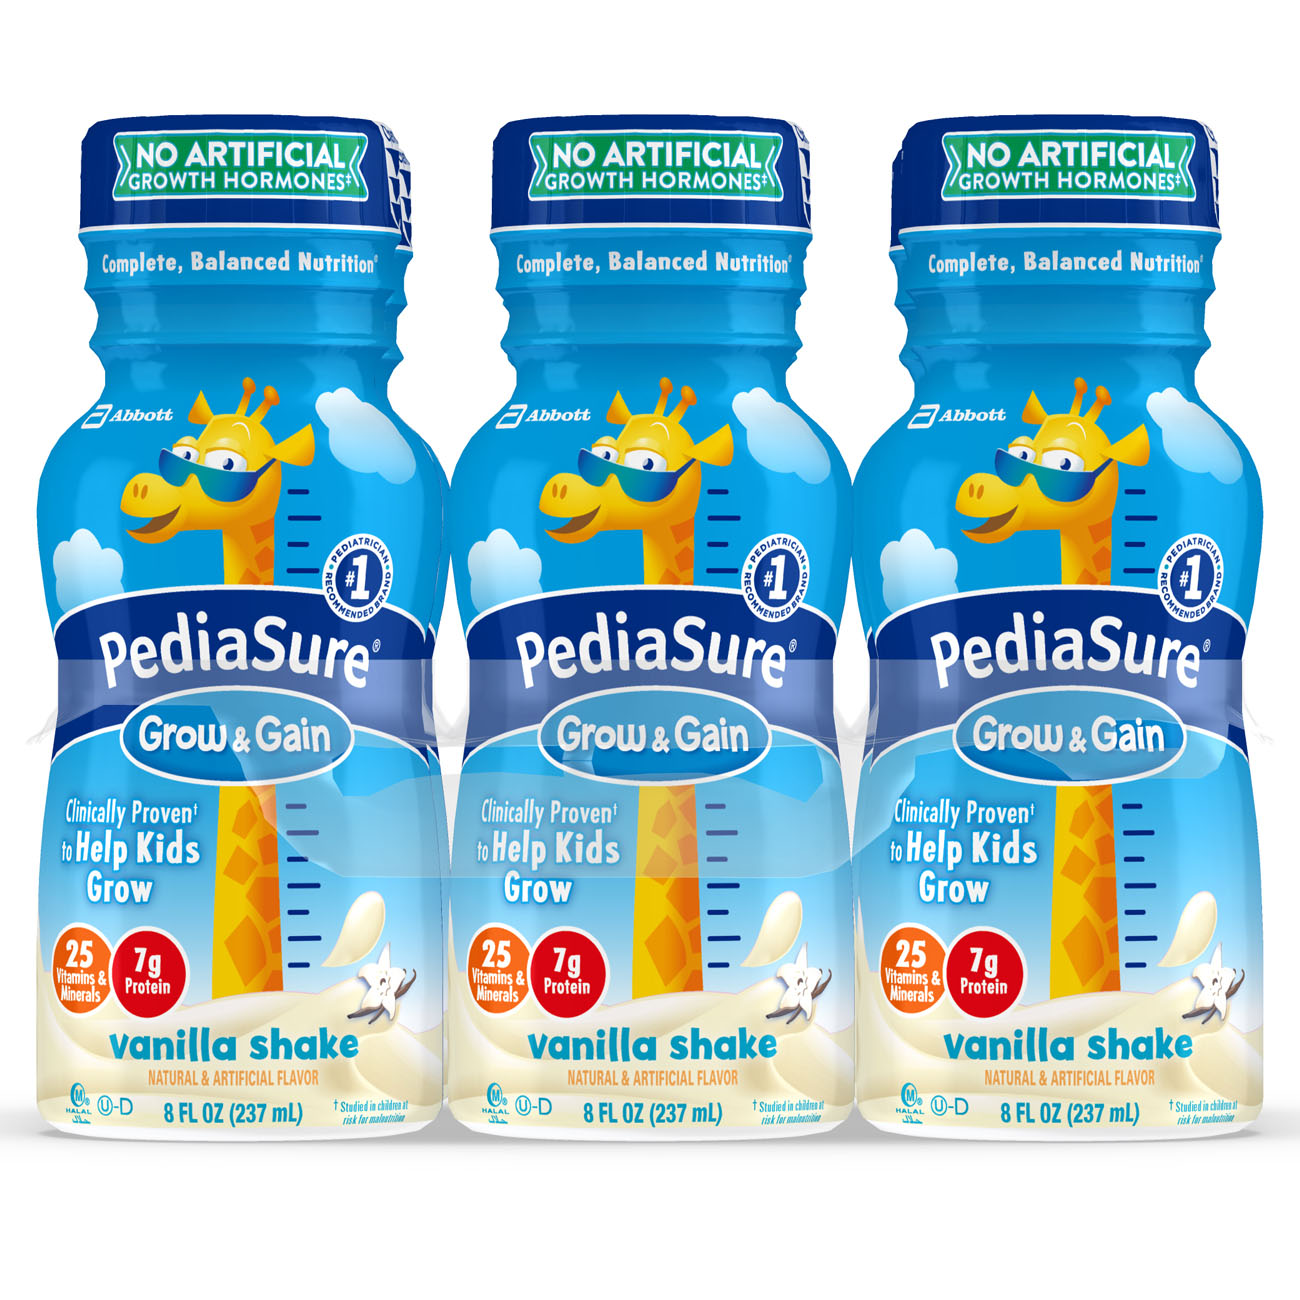 PediaSure Grow & Gain Nutrition Shake Vanilla 8 fl oz Bottles (Pack of 24)